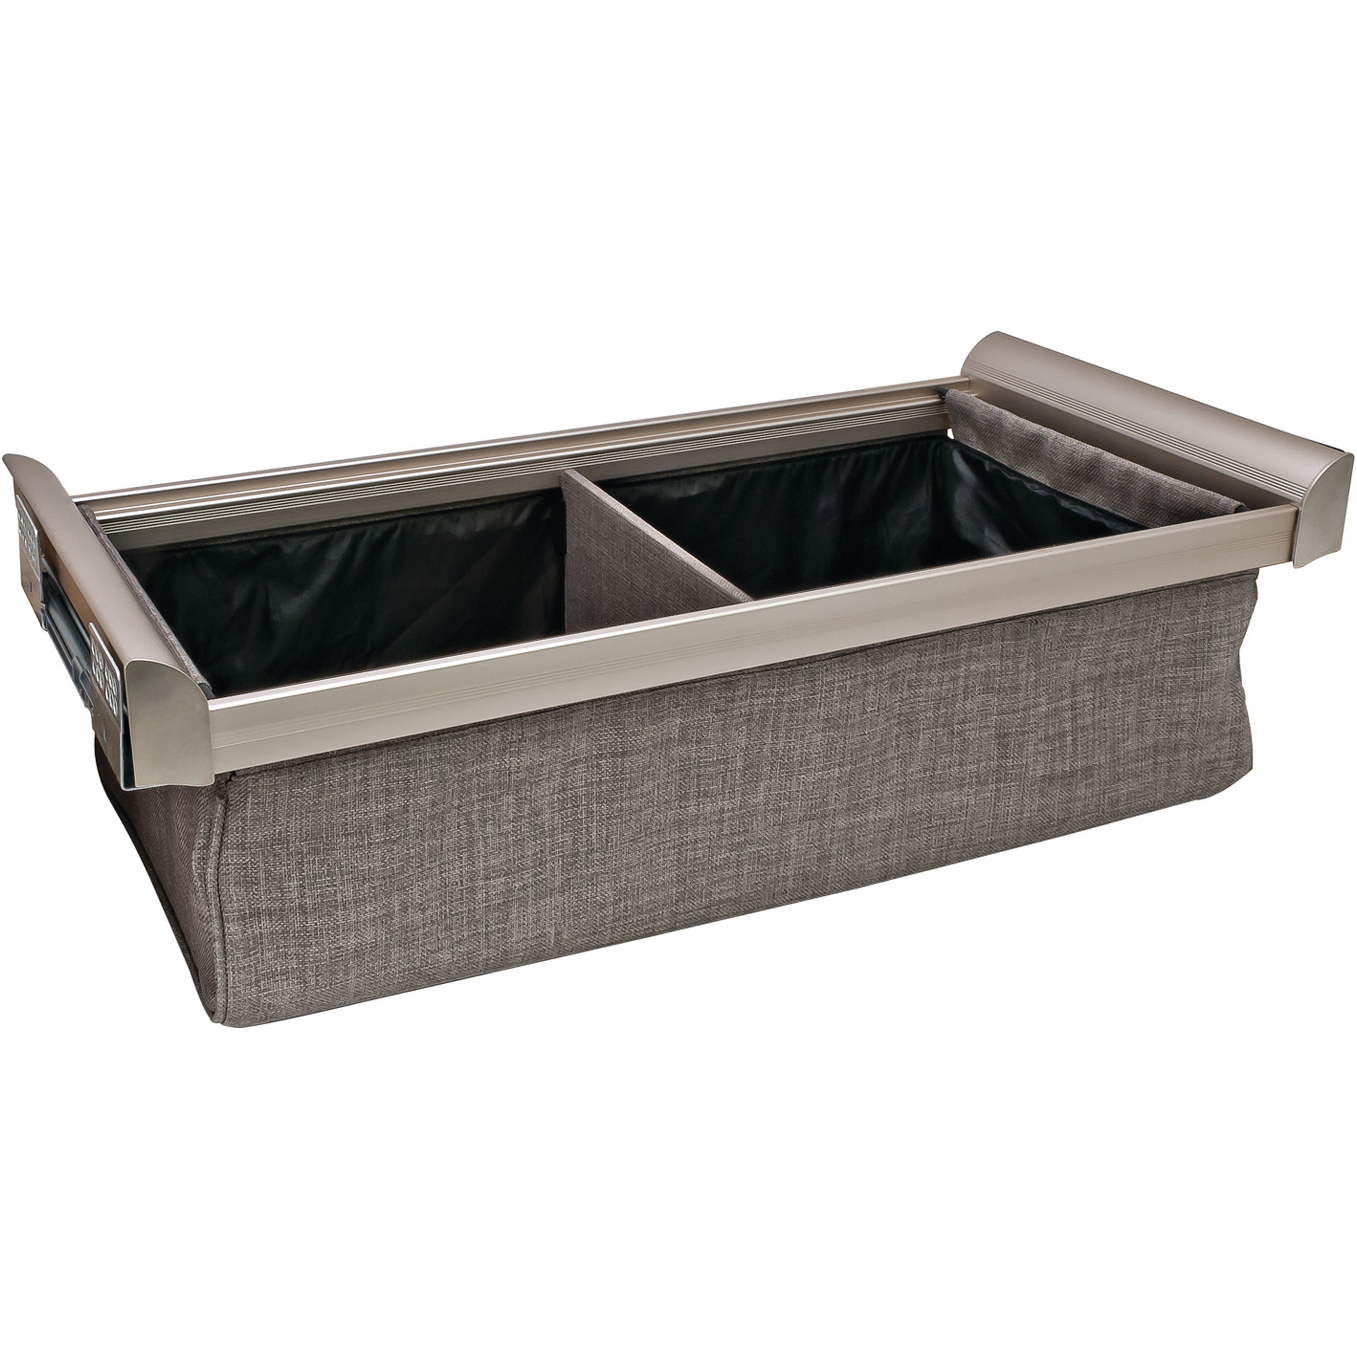 Engage Nickel Deep Drawer 18 Inches with 1 Divider